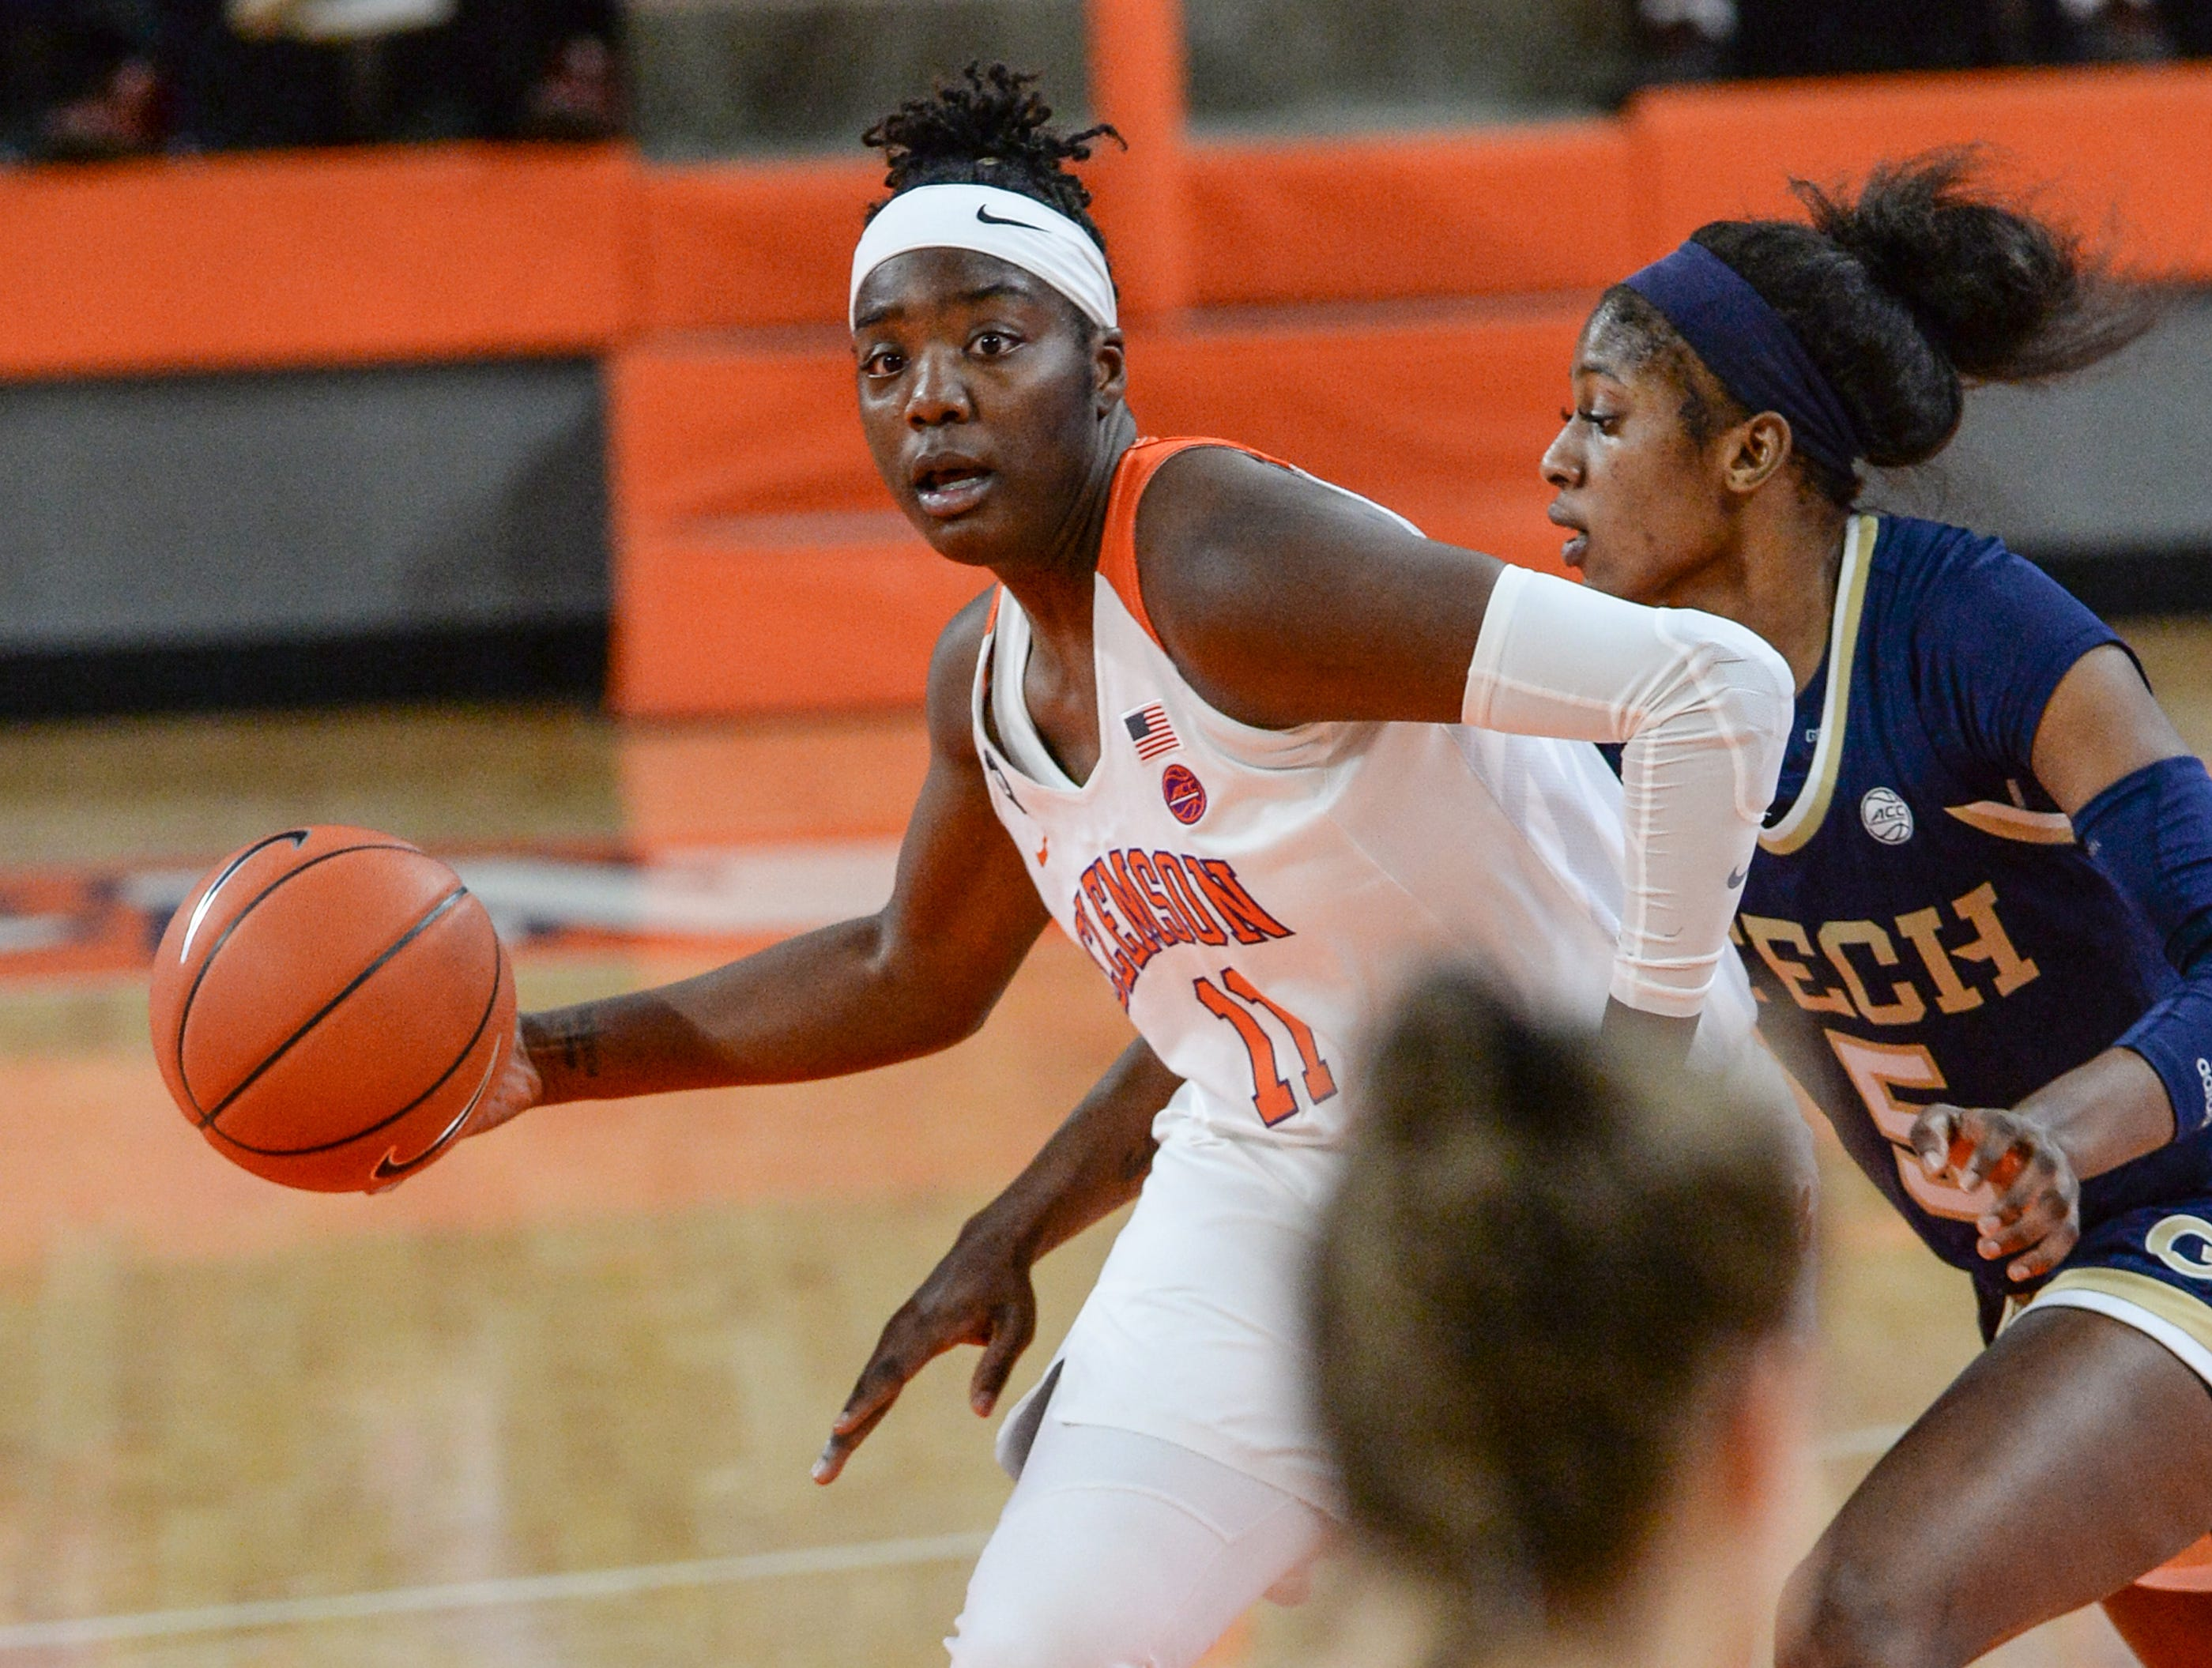 Clemson forward Taylor Hosendove(11) dribbles near Georgia Tech guard Liz Balogun(5) during the second quarter at Littlejohn Coliseum in Clemson Thursday, January 17, 2019.